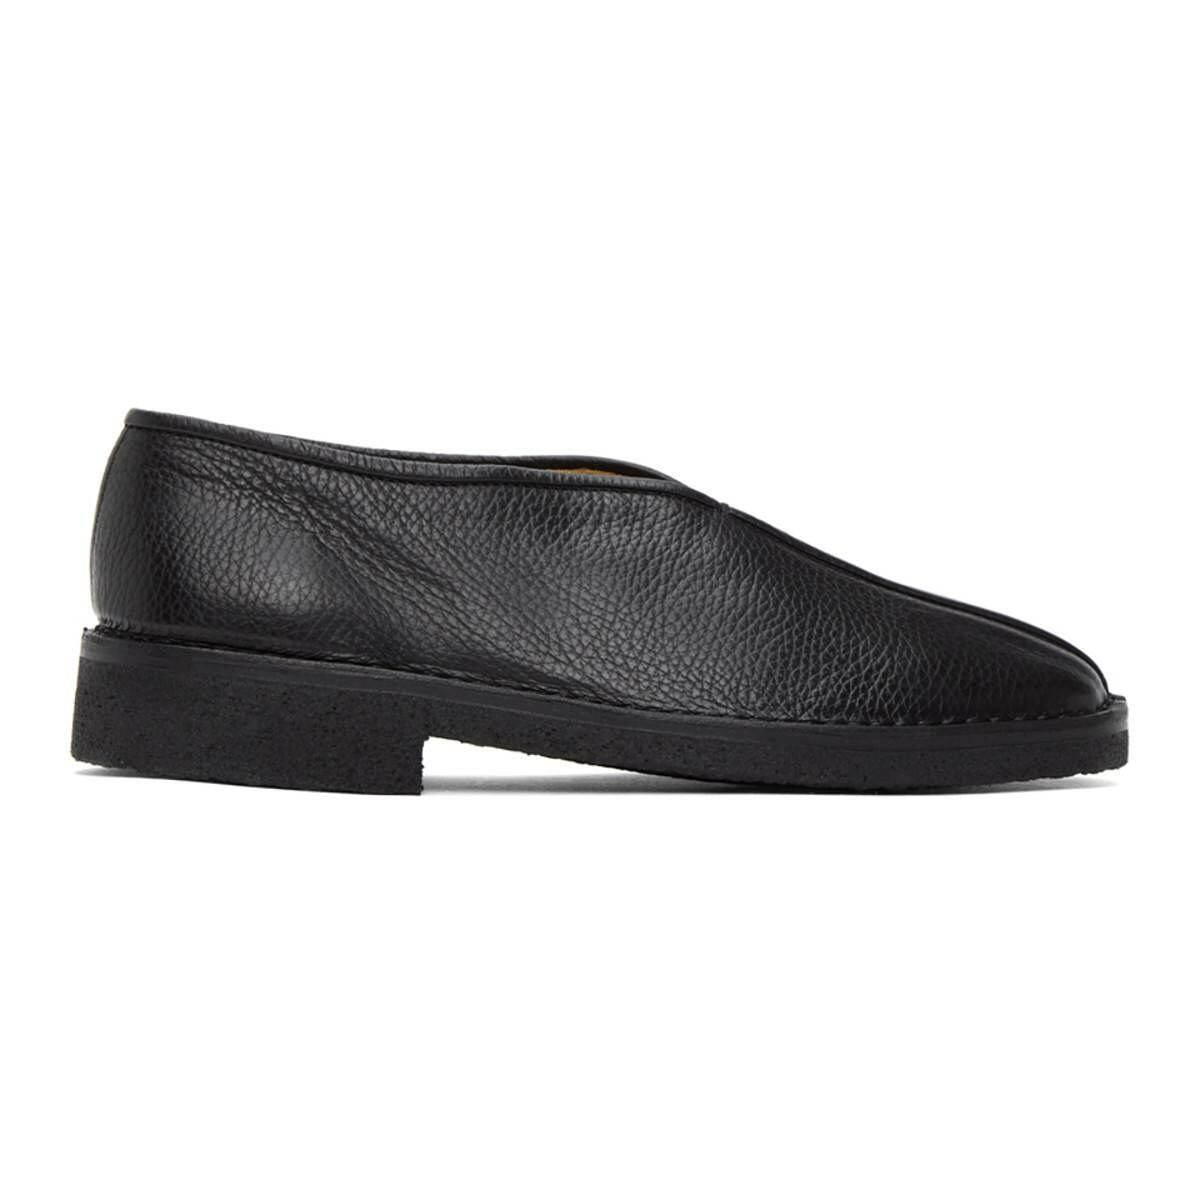 Lemaire Black Square Toe Slippers Ssense USA MEN Men SHOES Mens LOAFERS